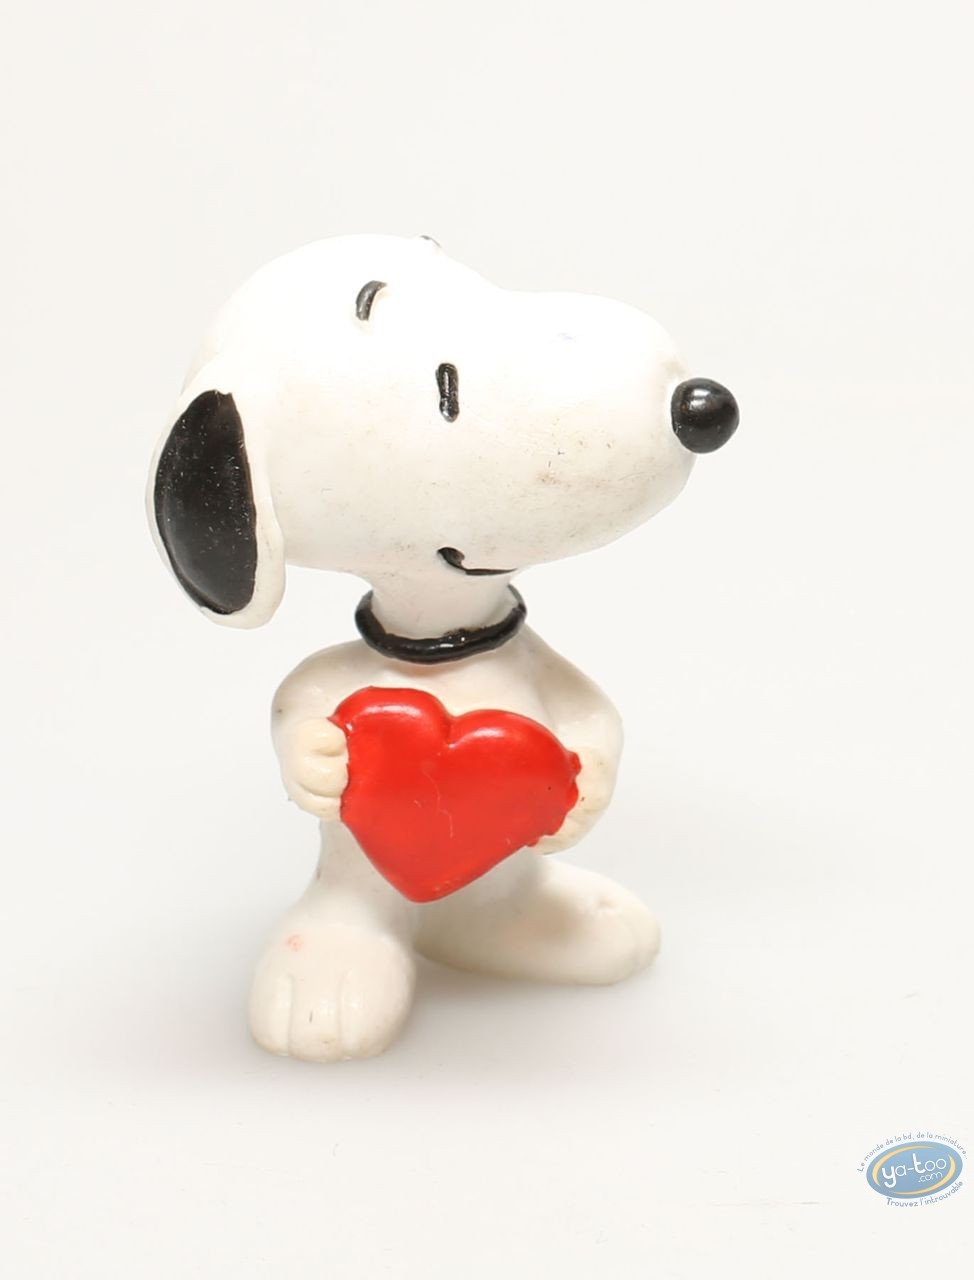 Plastic Figurine, Snoopy : Snoopy with heart